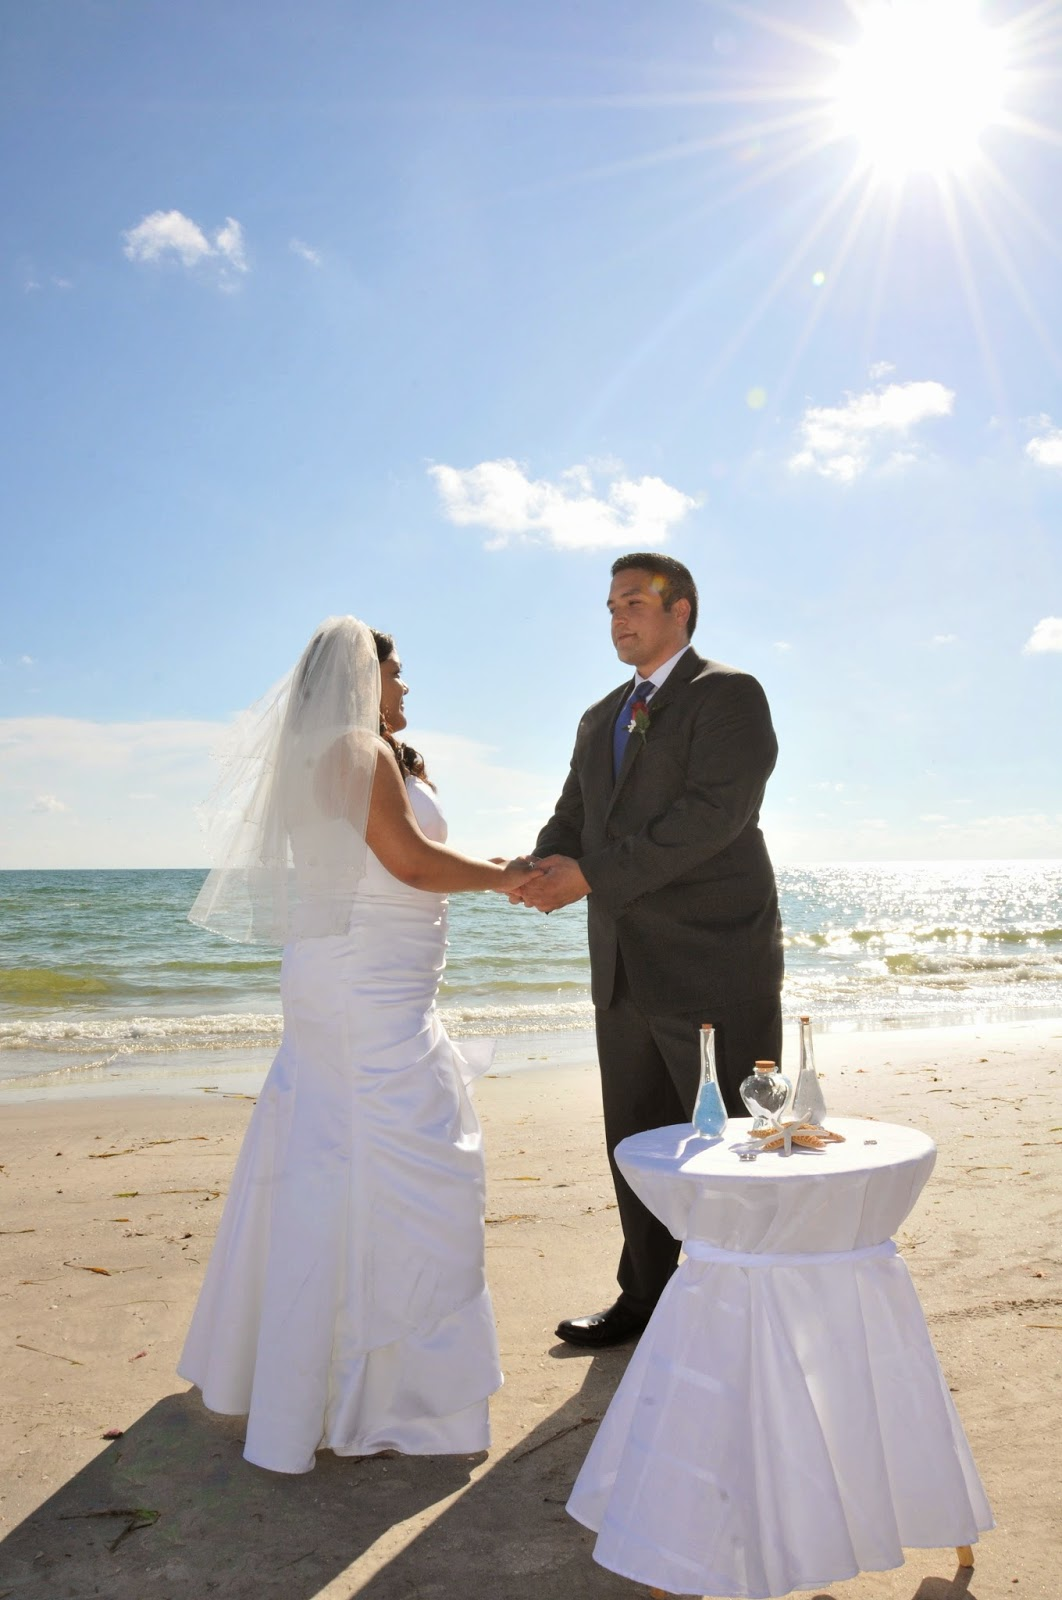 Affordable Wedding Photography Tampa Fl: Affordable Beach Weddings! 305-793-4387: TAMPA BEACH WEDDING